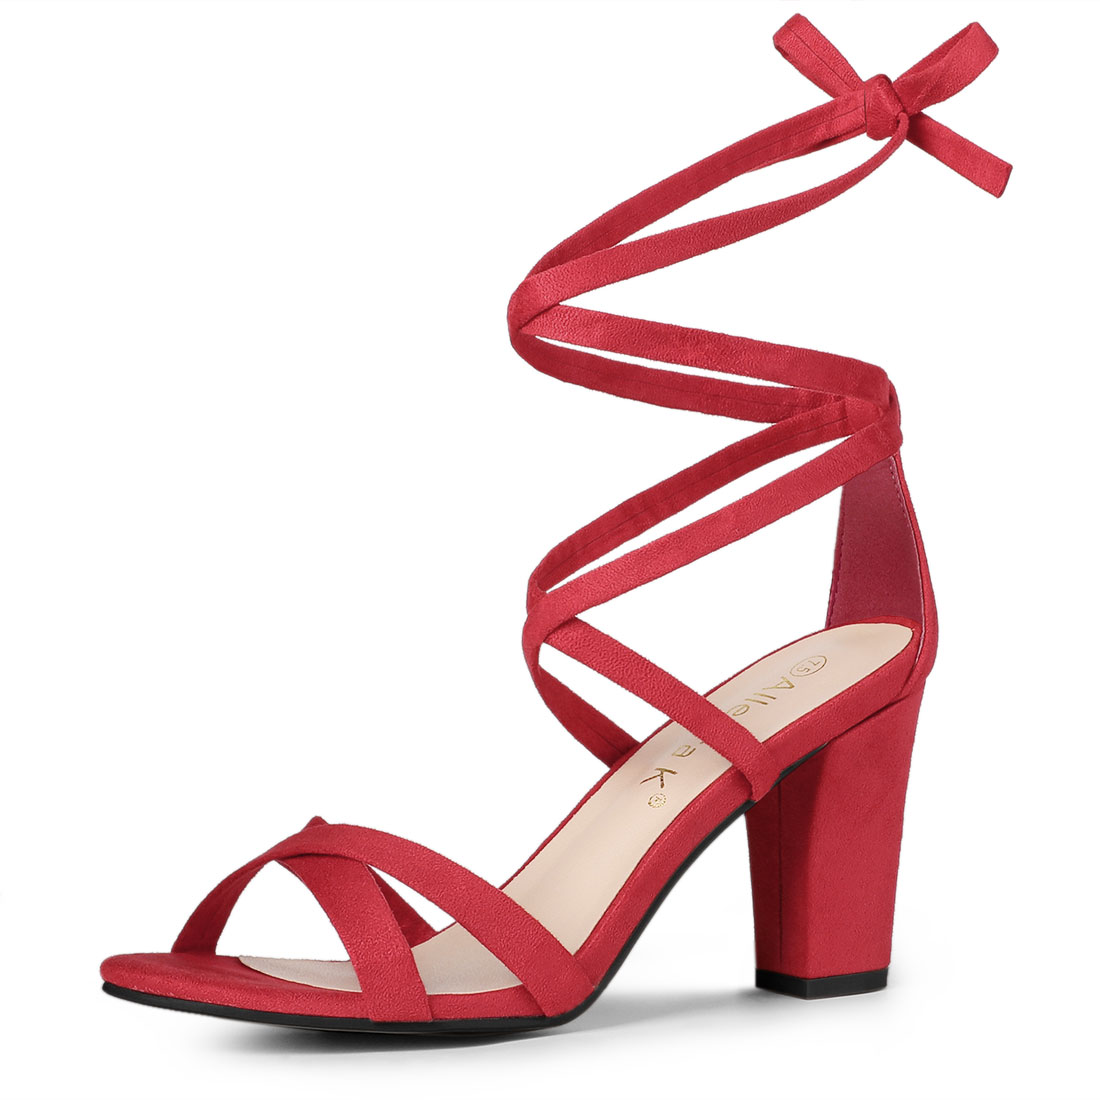 Allegra K Women's Lace-up Heeled Sandals Red 1 US 10